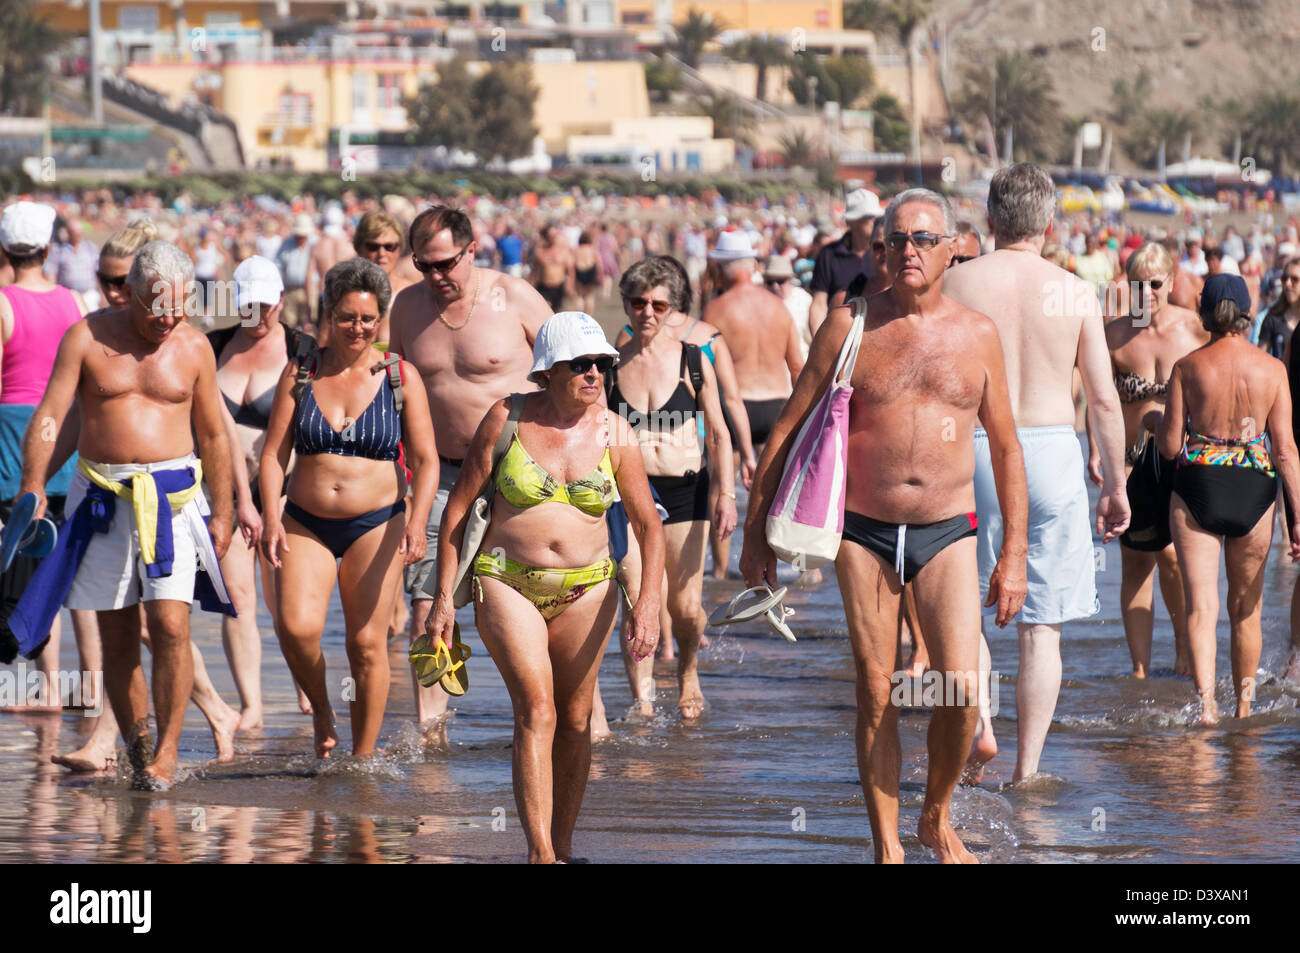 crowds-of-people-throng-the-beach-at-pla